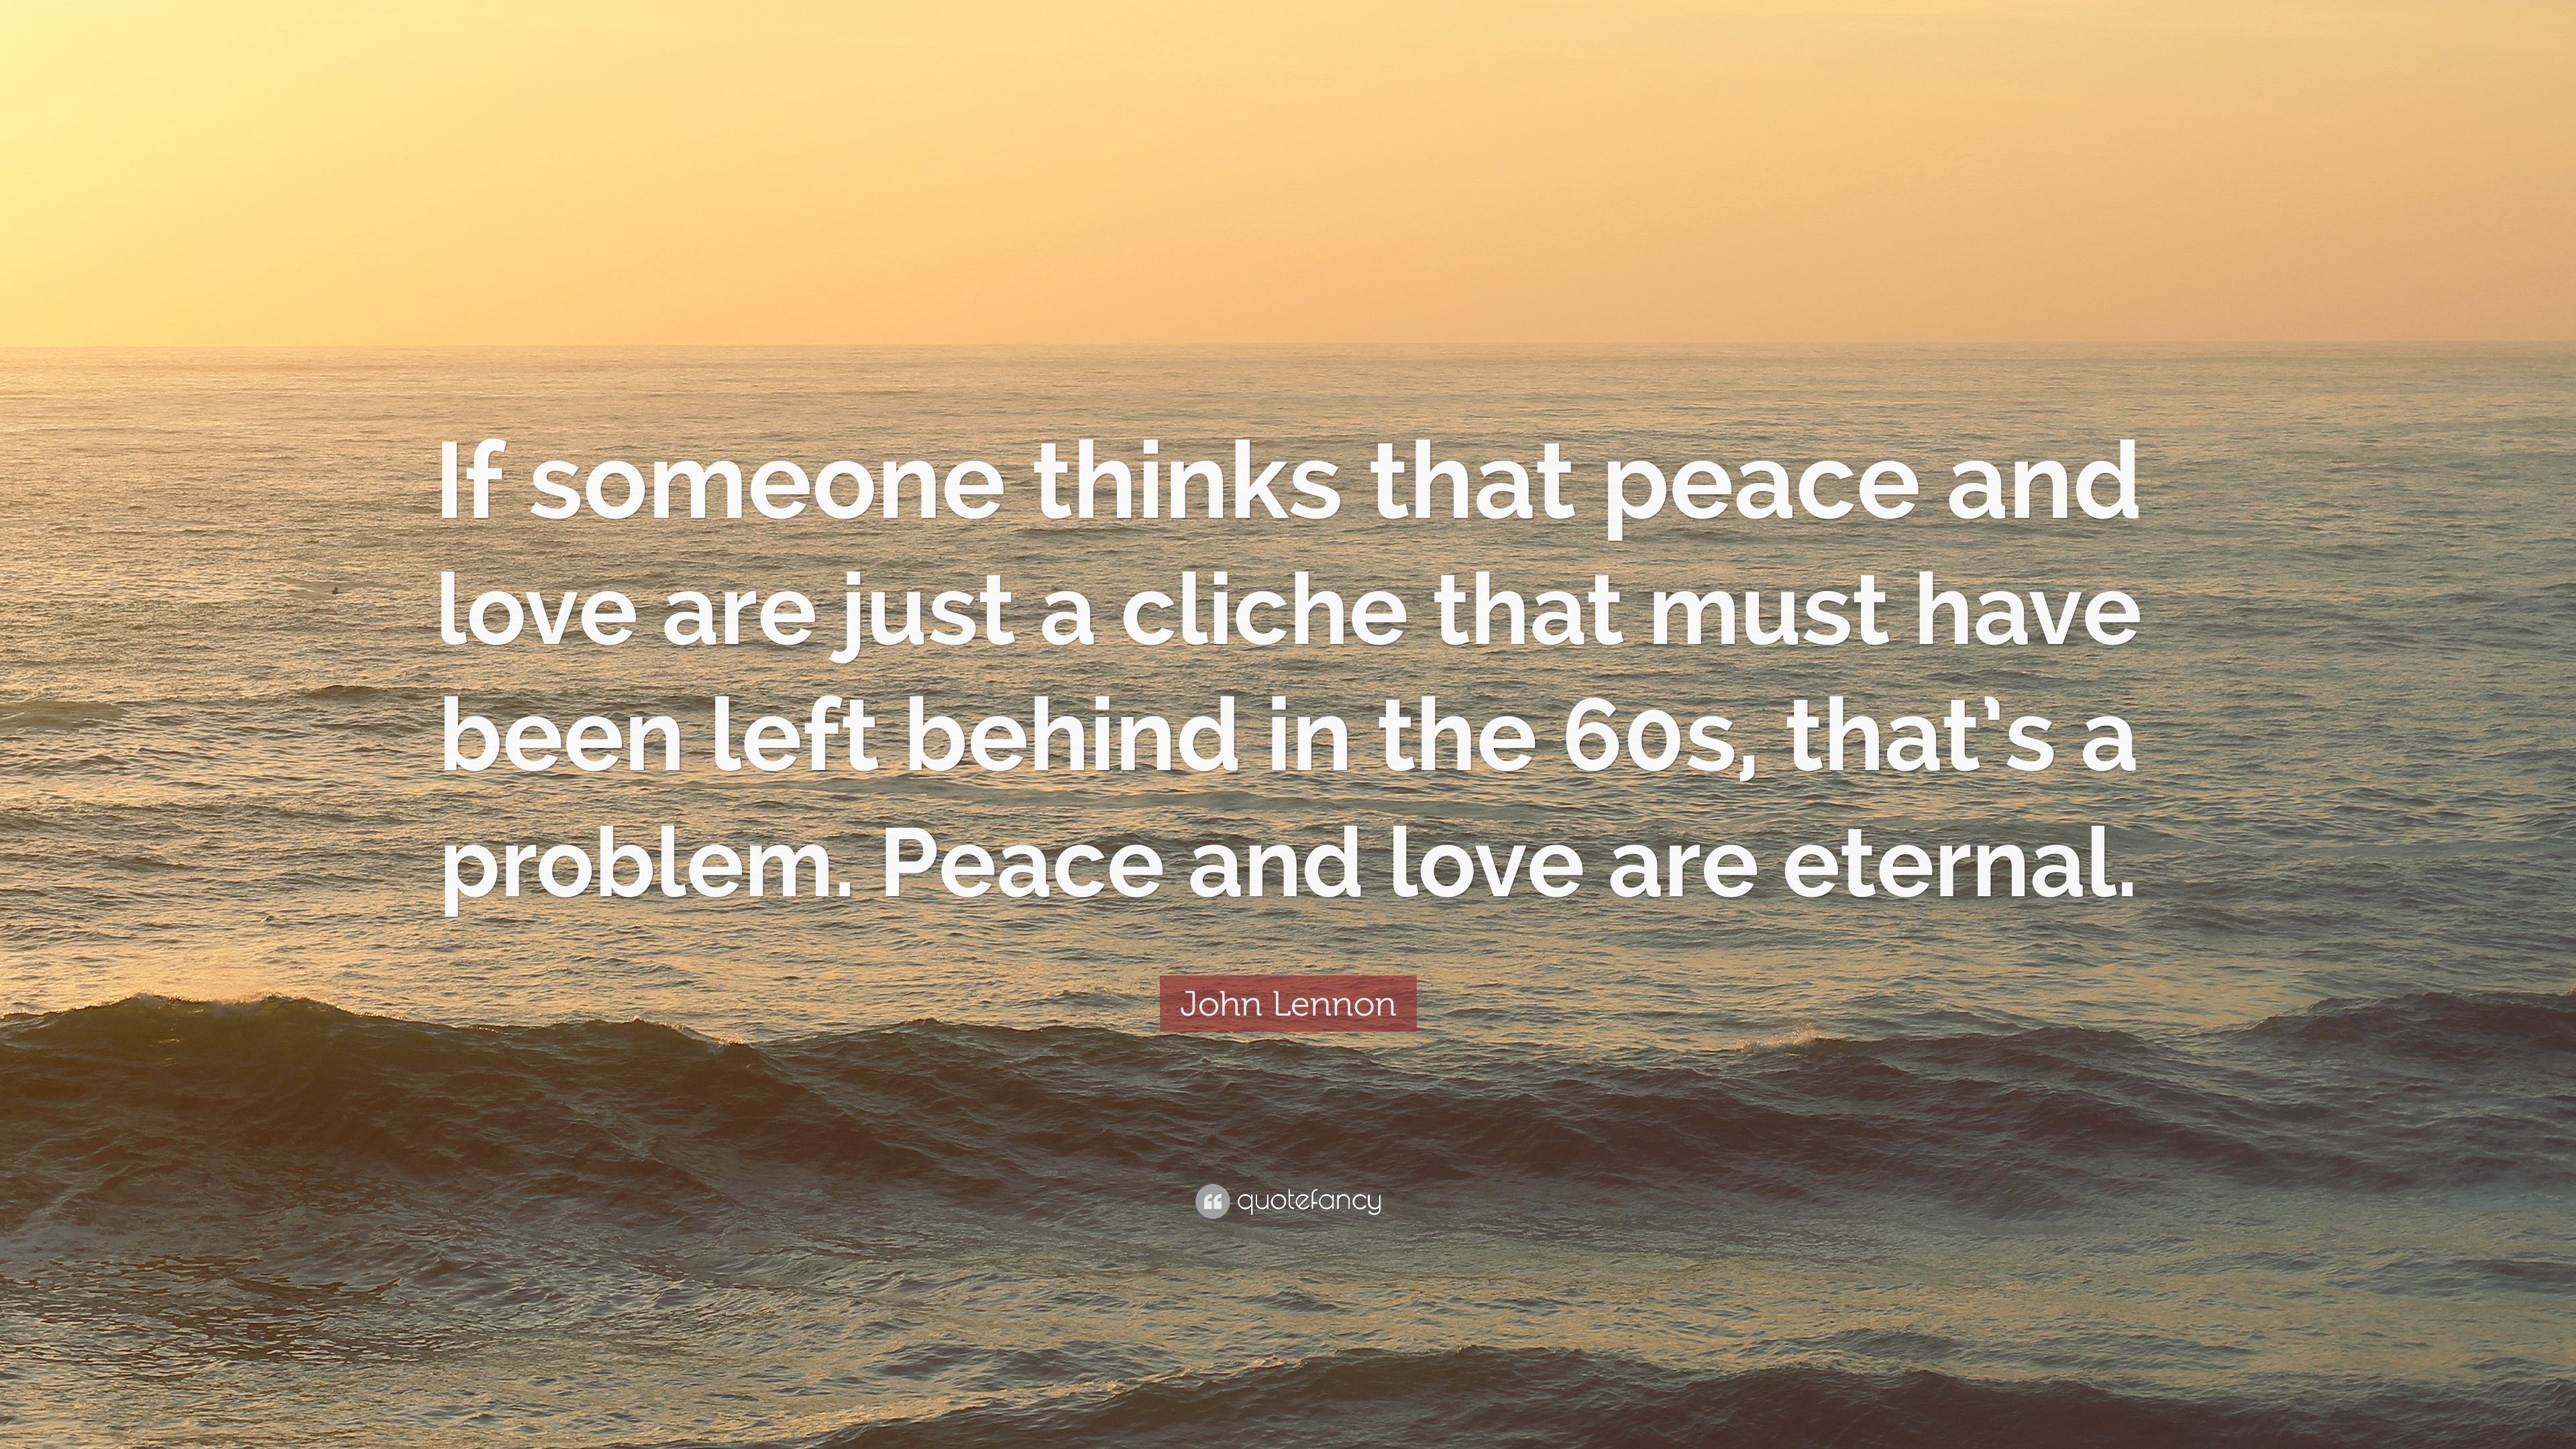 John Lennon Quote: U201cIf Someone Thinks That Peace And Love Are Just A Cliche